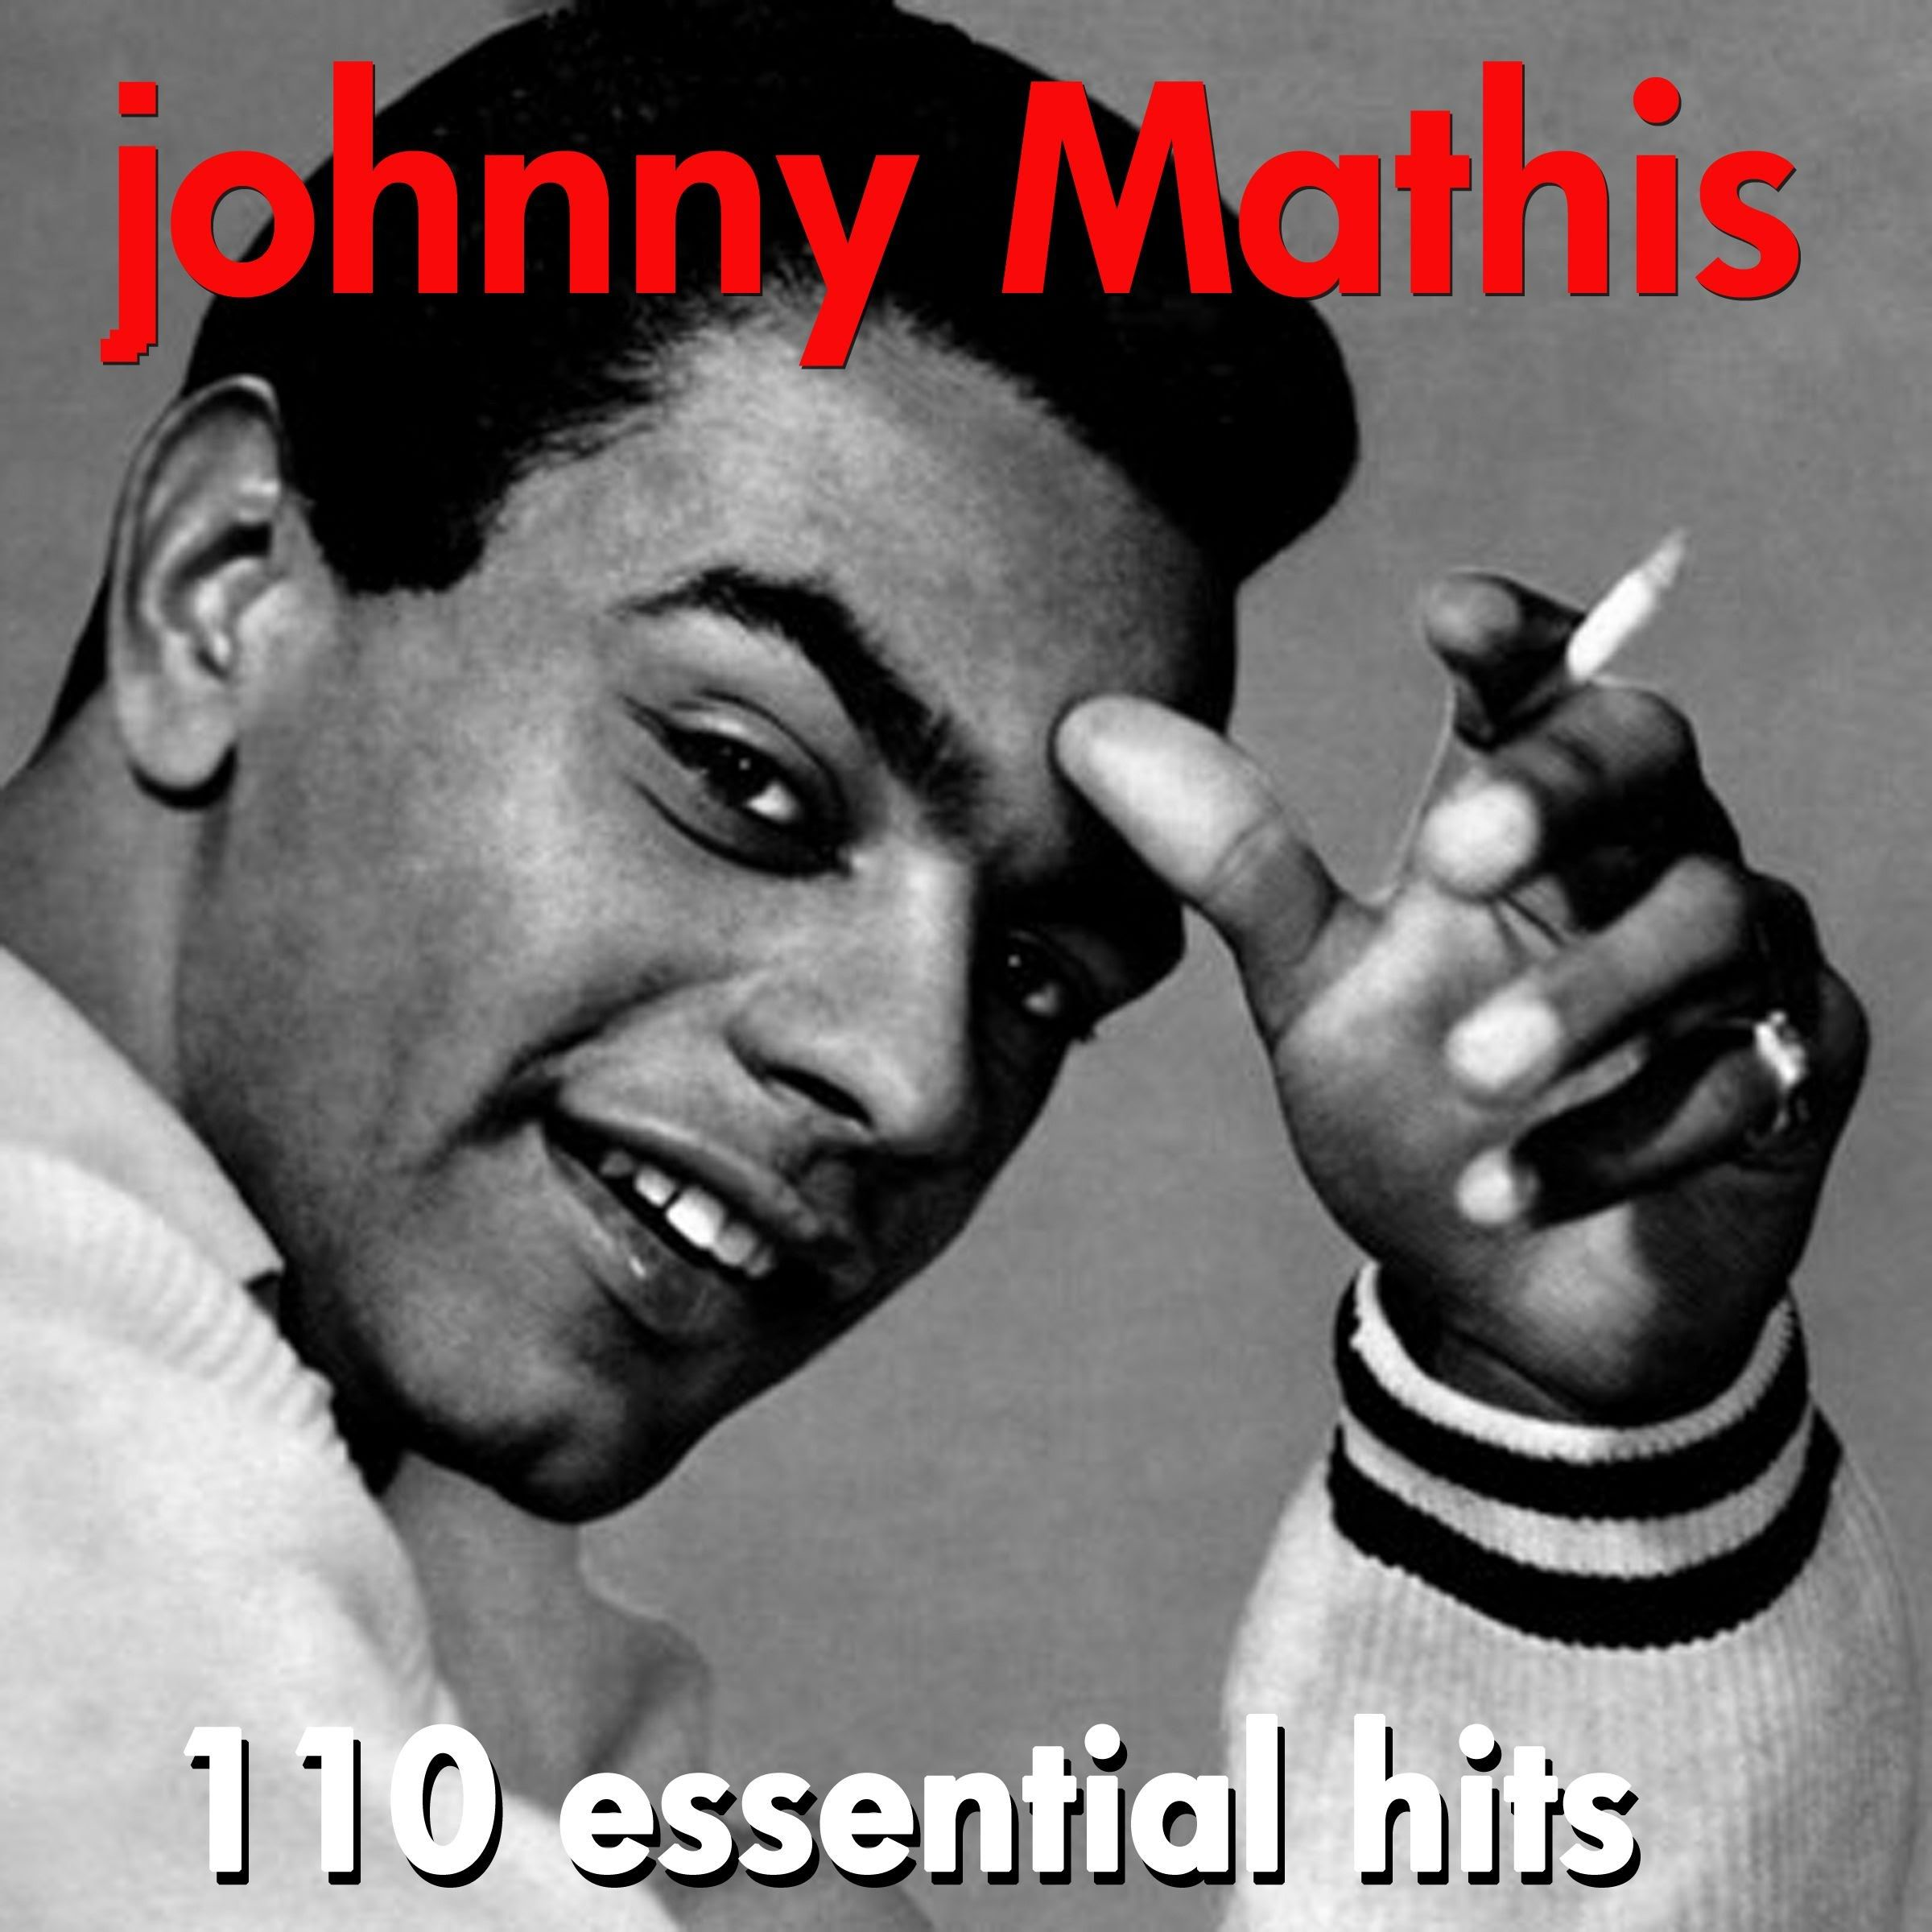 Johnny Mathis – 20 Greatest Hits (1994, CD) - Discogs |Johnny Mathis Greatest Hits Youtube